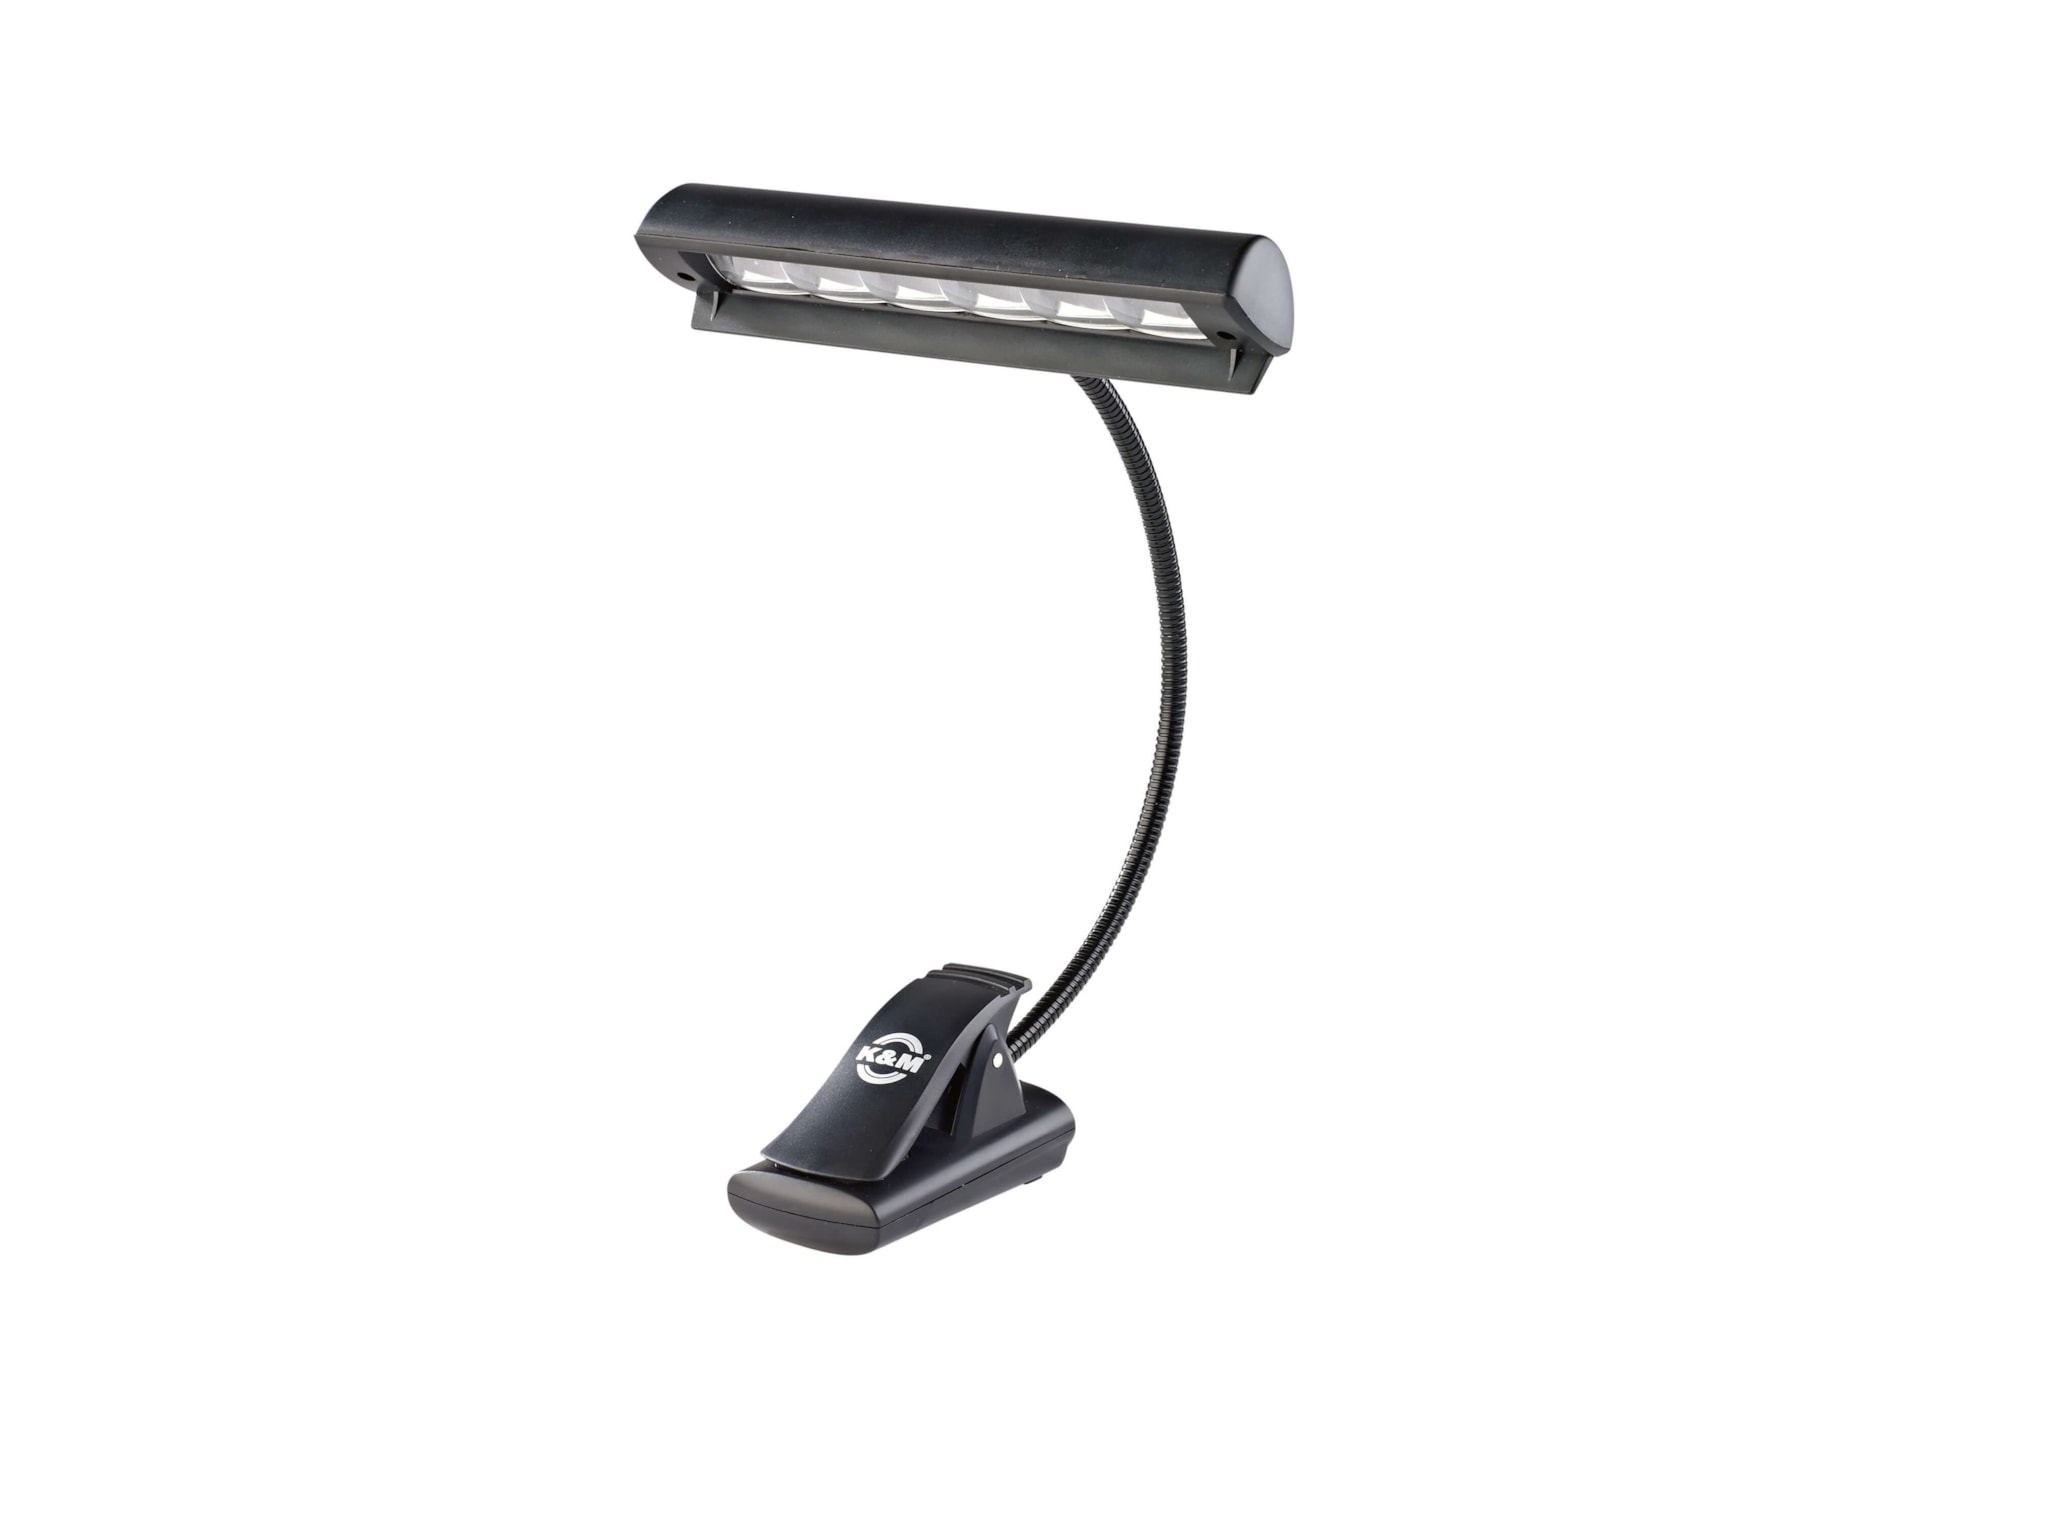 KM12248 - Music stand light »Concert Light«